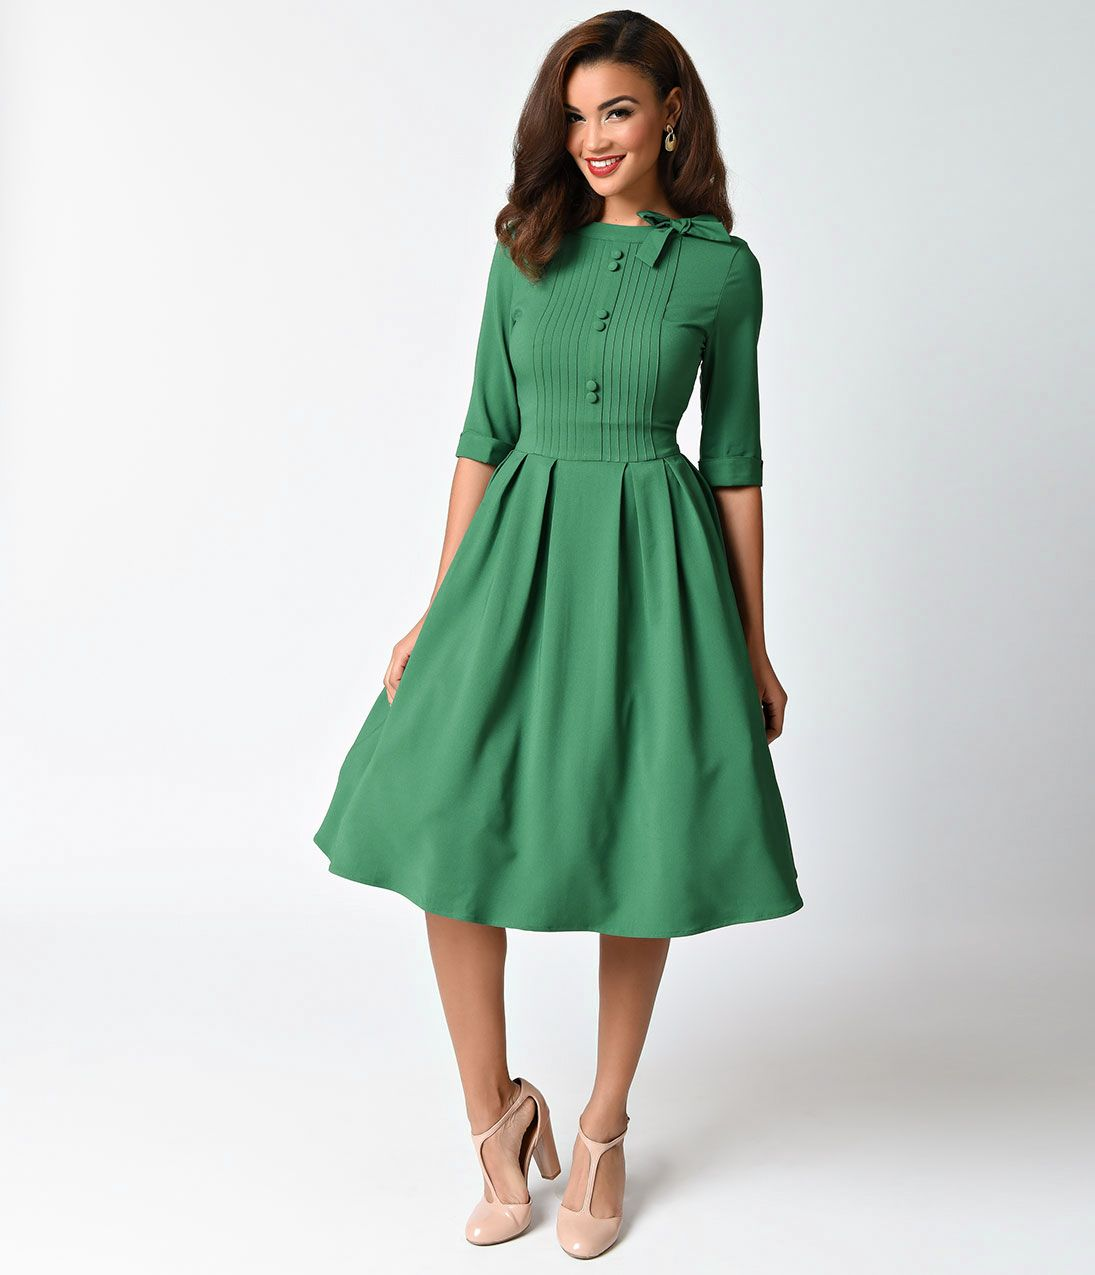 52d9271a259253 1940s Style Dresses and Clothing Hell Bunny 1940s Style Green Crepe Half  Sleeve Madison Swing Dress Size XL $88.00 AT vintagedancer.com